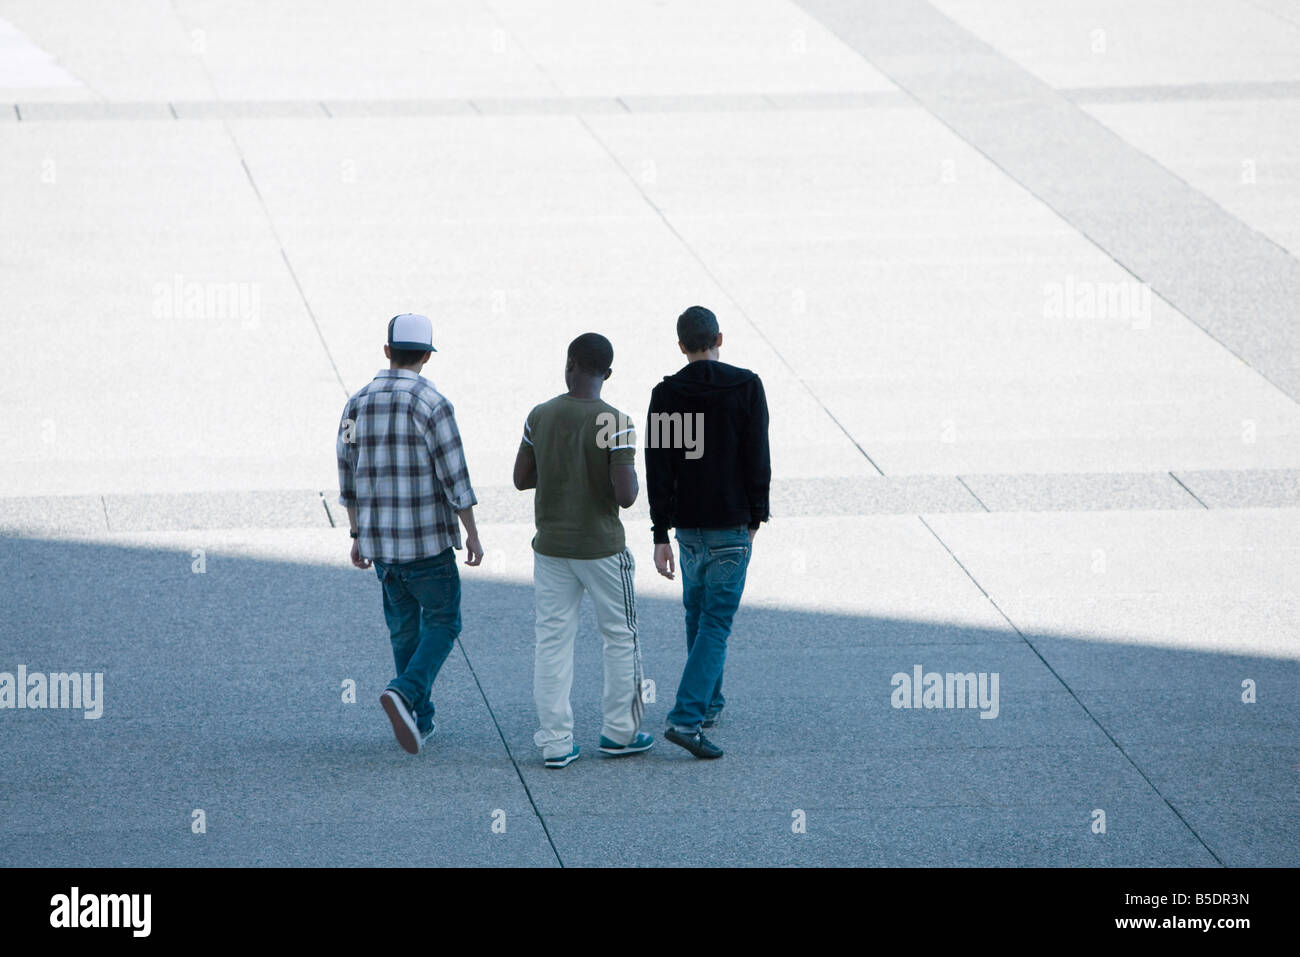 Three young men walking together across public square - Stock Image